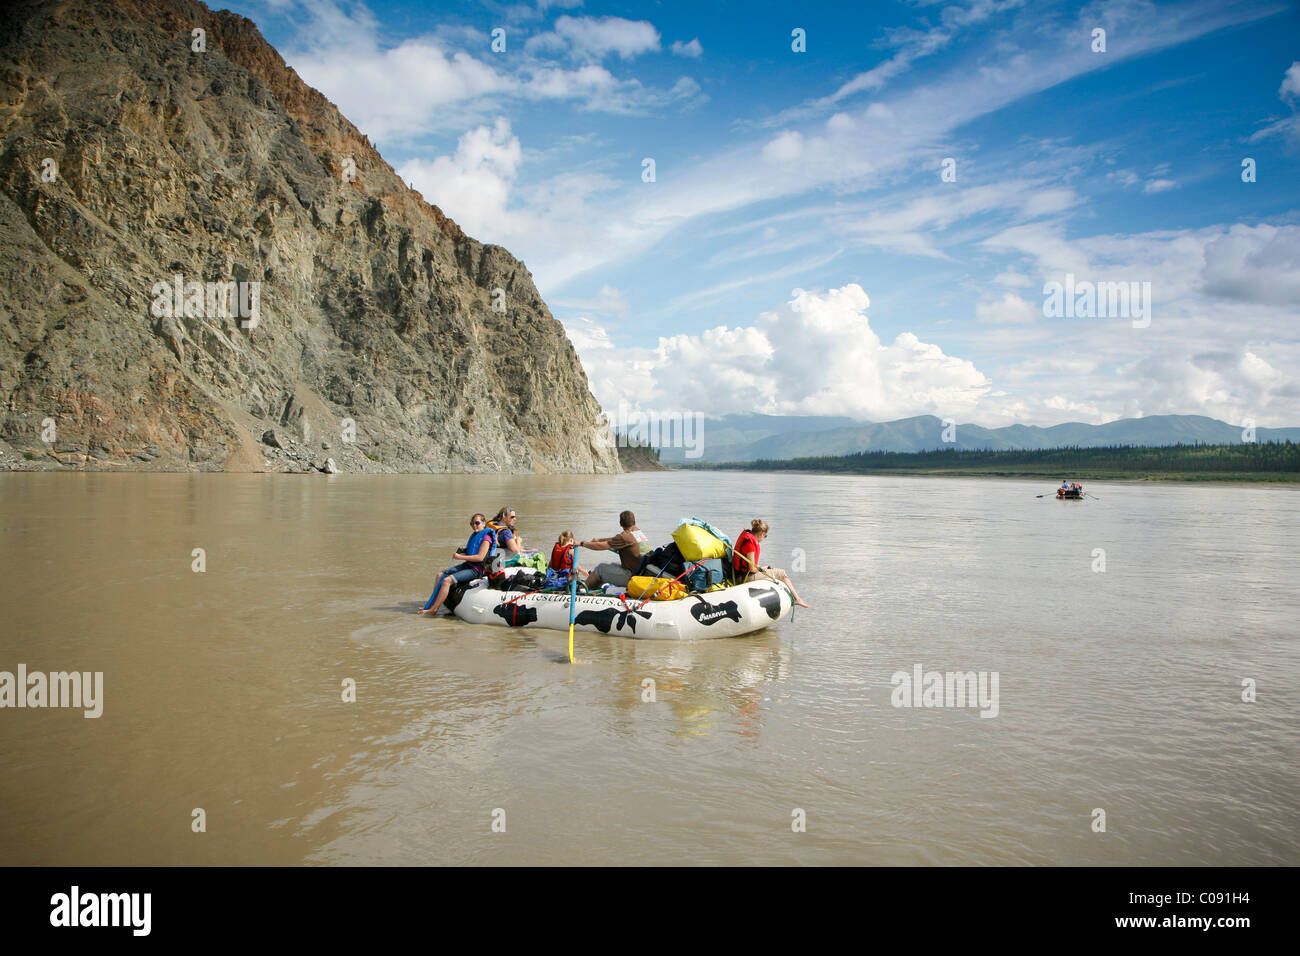 A family floats in a raft near the village of Eagle on the Yukon River, Interior Alaska, Summer - Stock Image